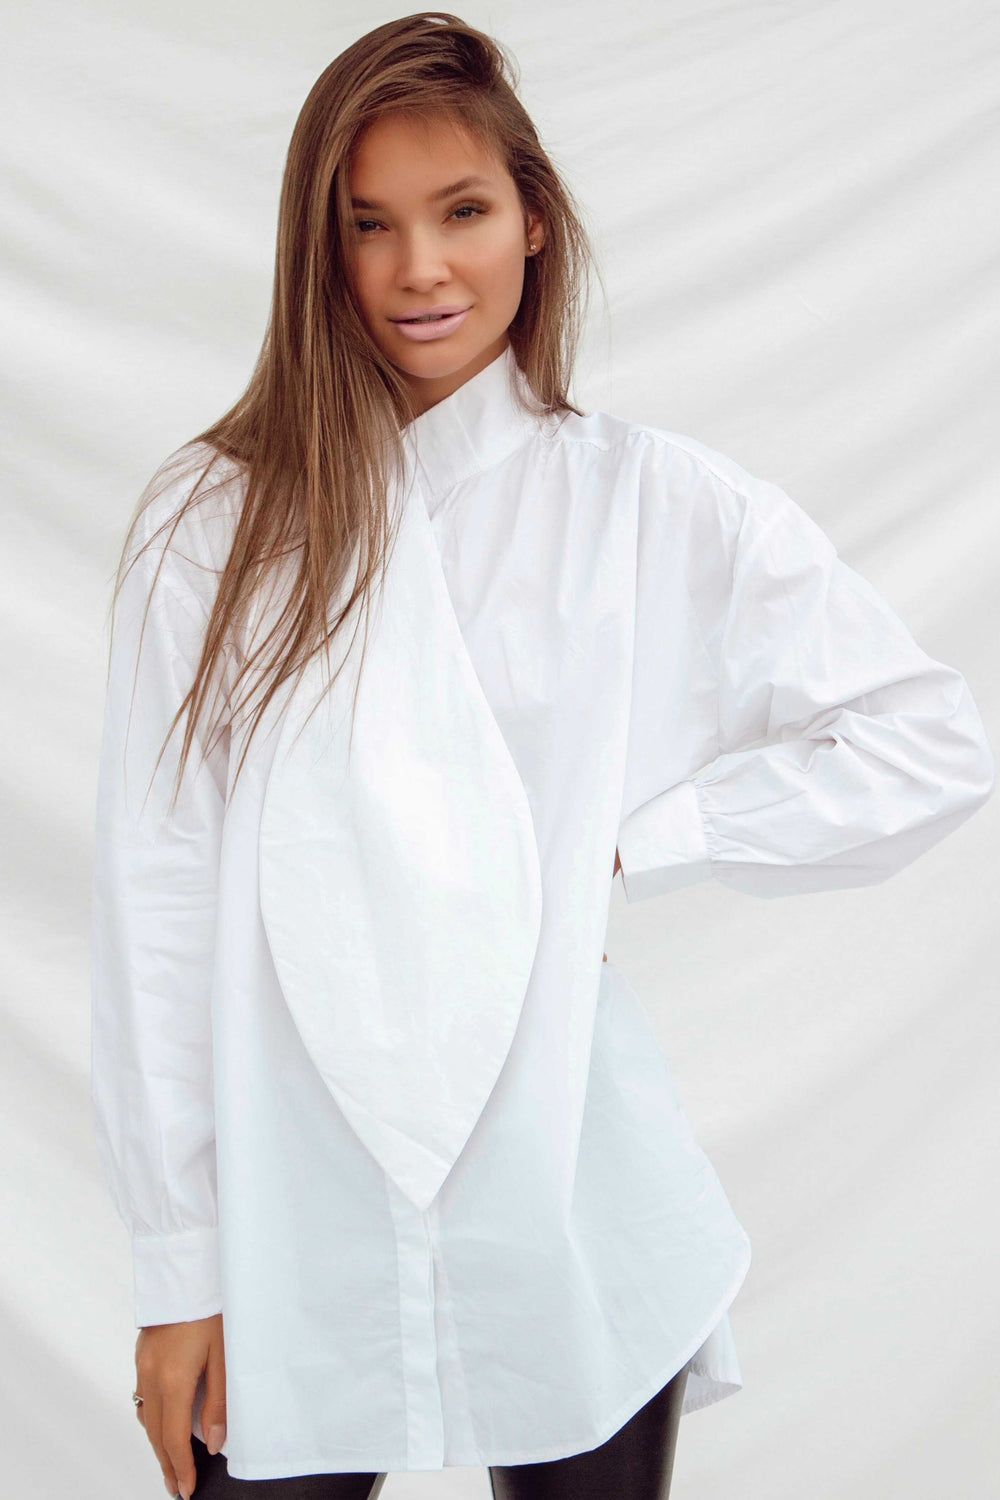 JASPER SHIRT IN WHITE | Women's Online Shopping | CHICLEFRIQUE